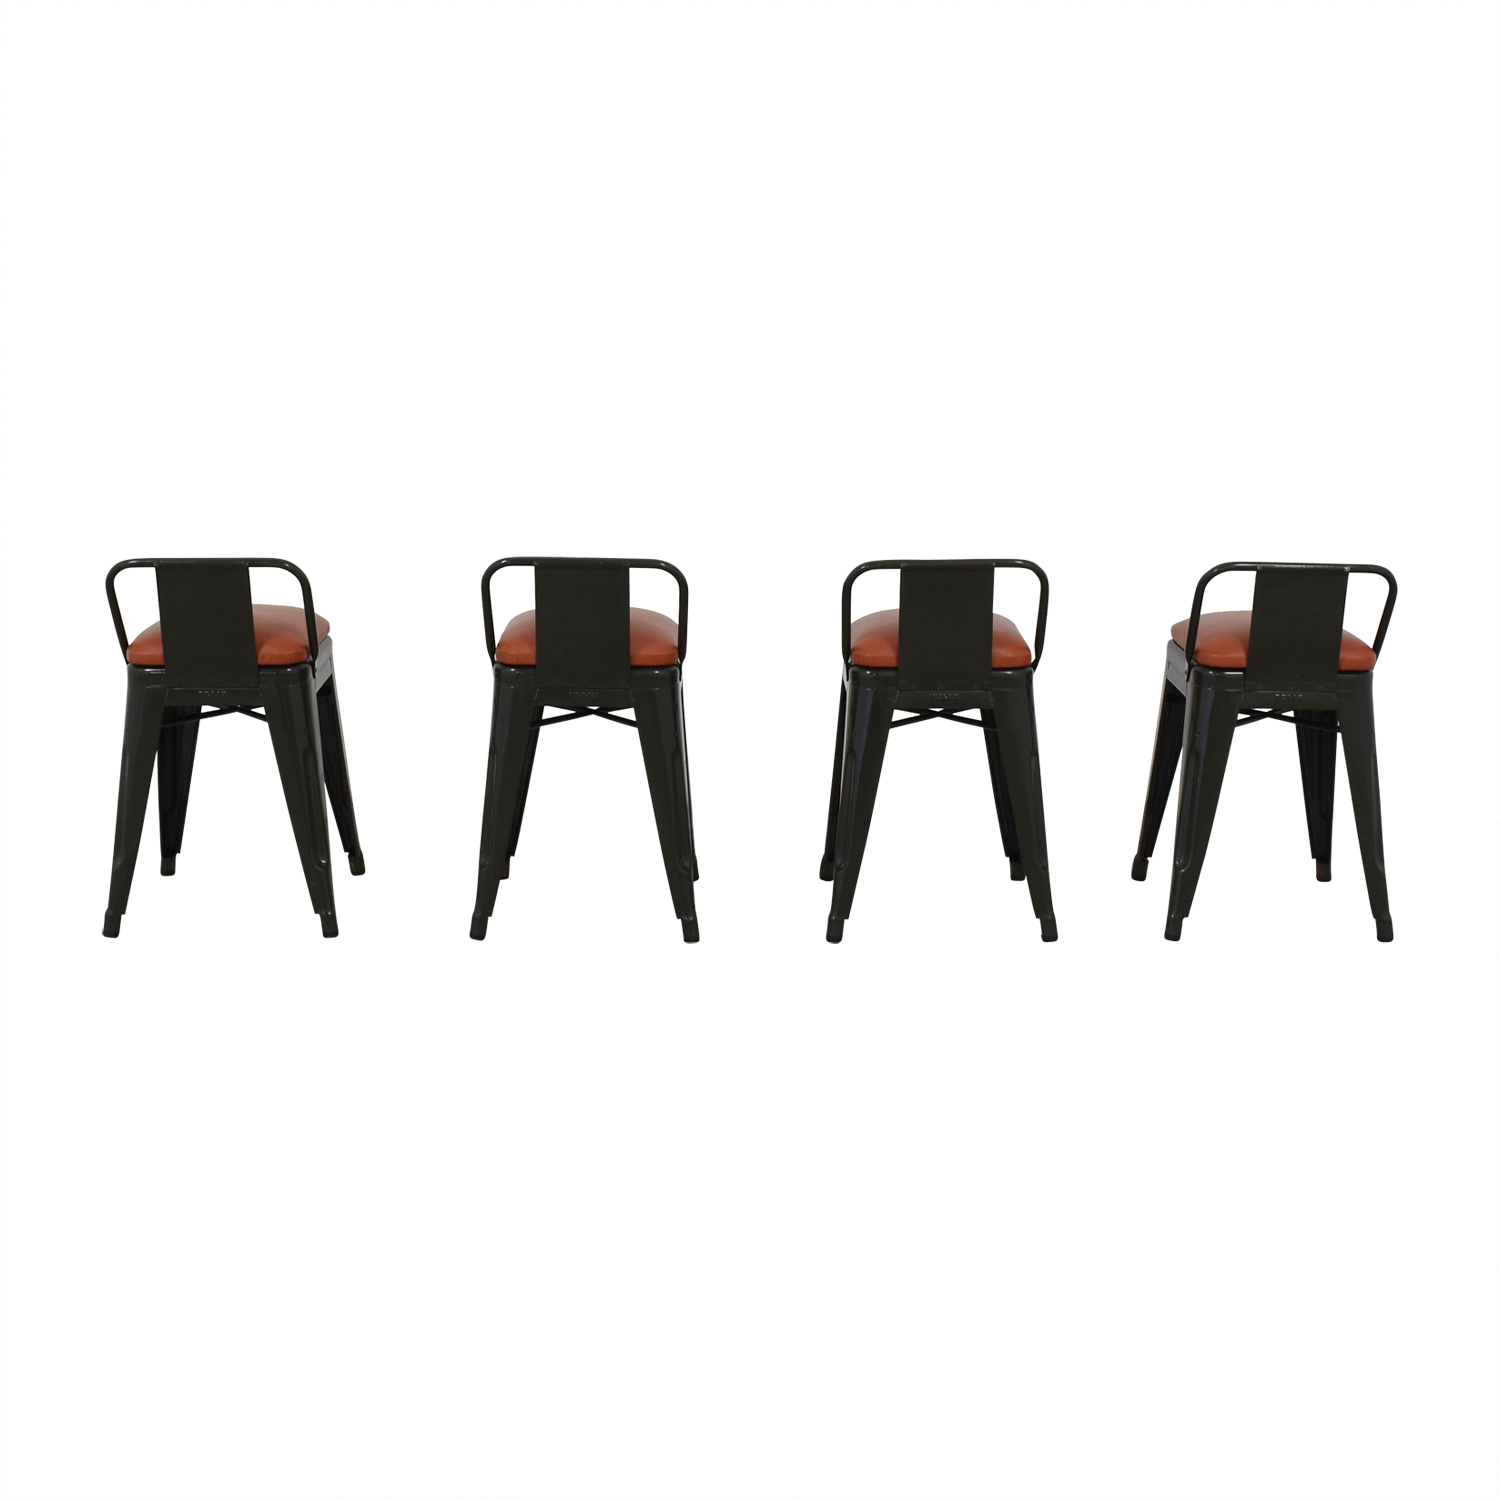 Tolix Tolix Industrial Stools Chairs